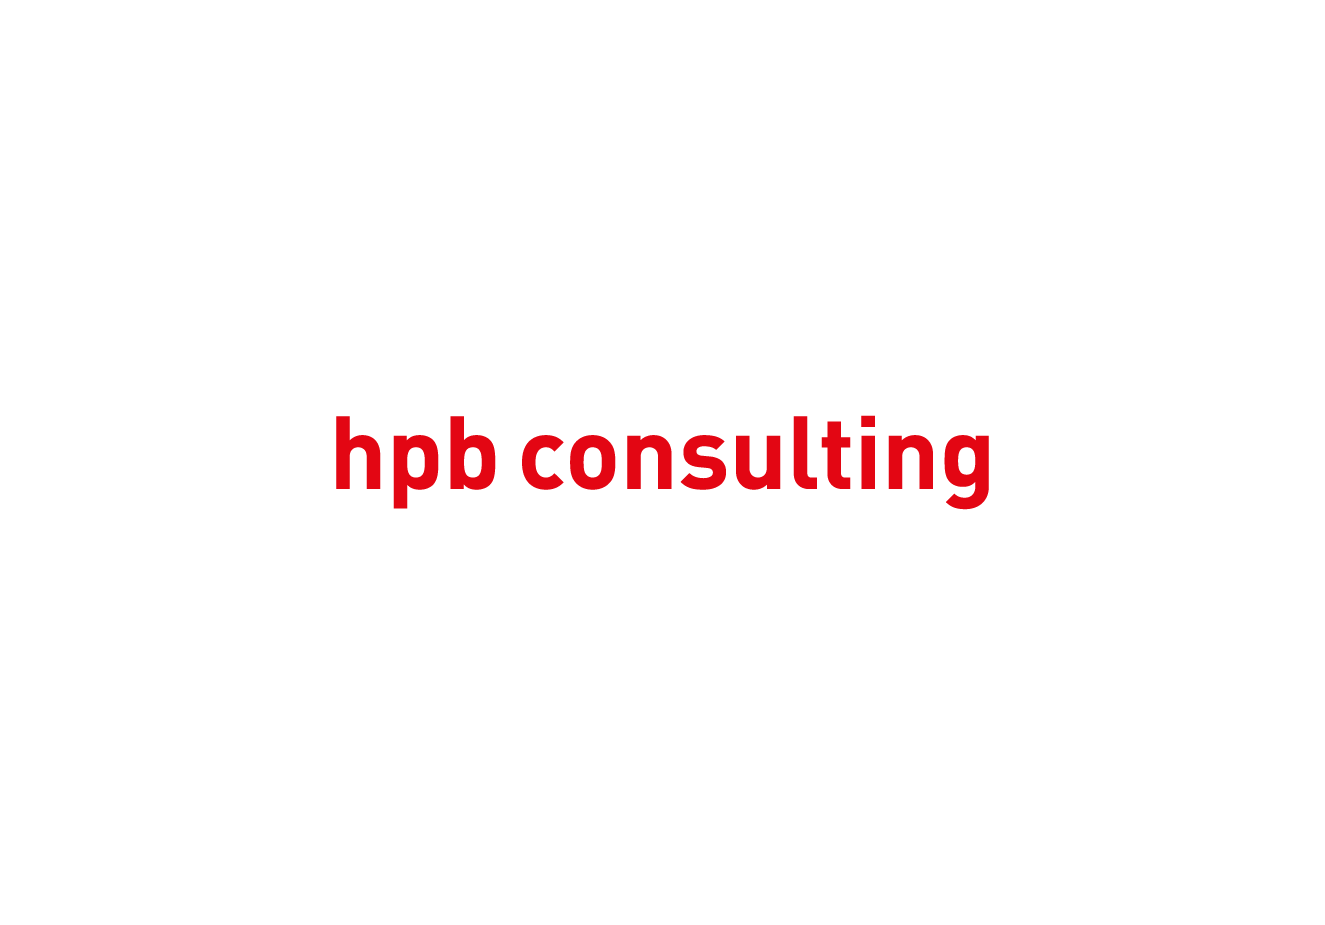 hpbconsulting